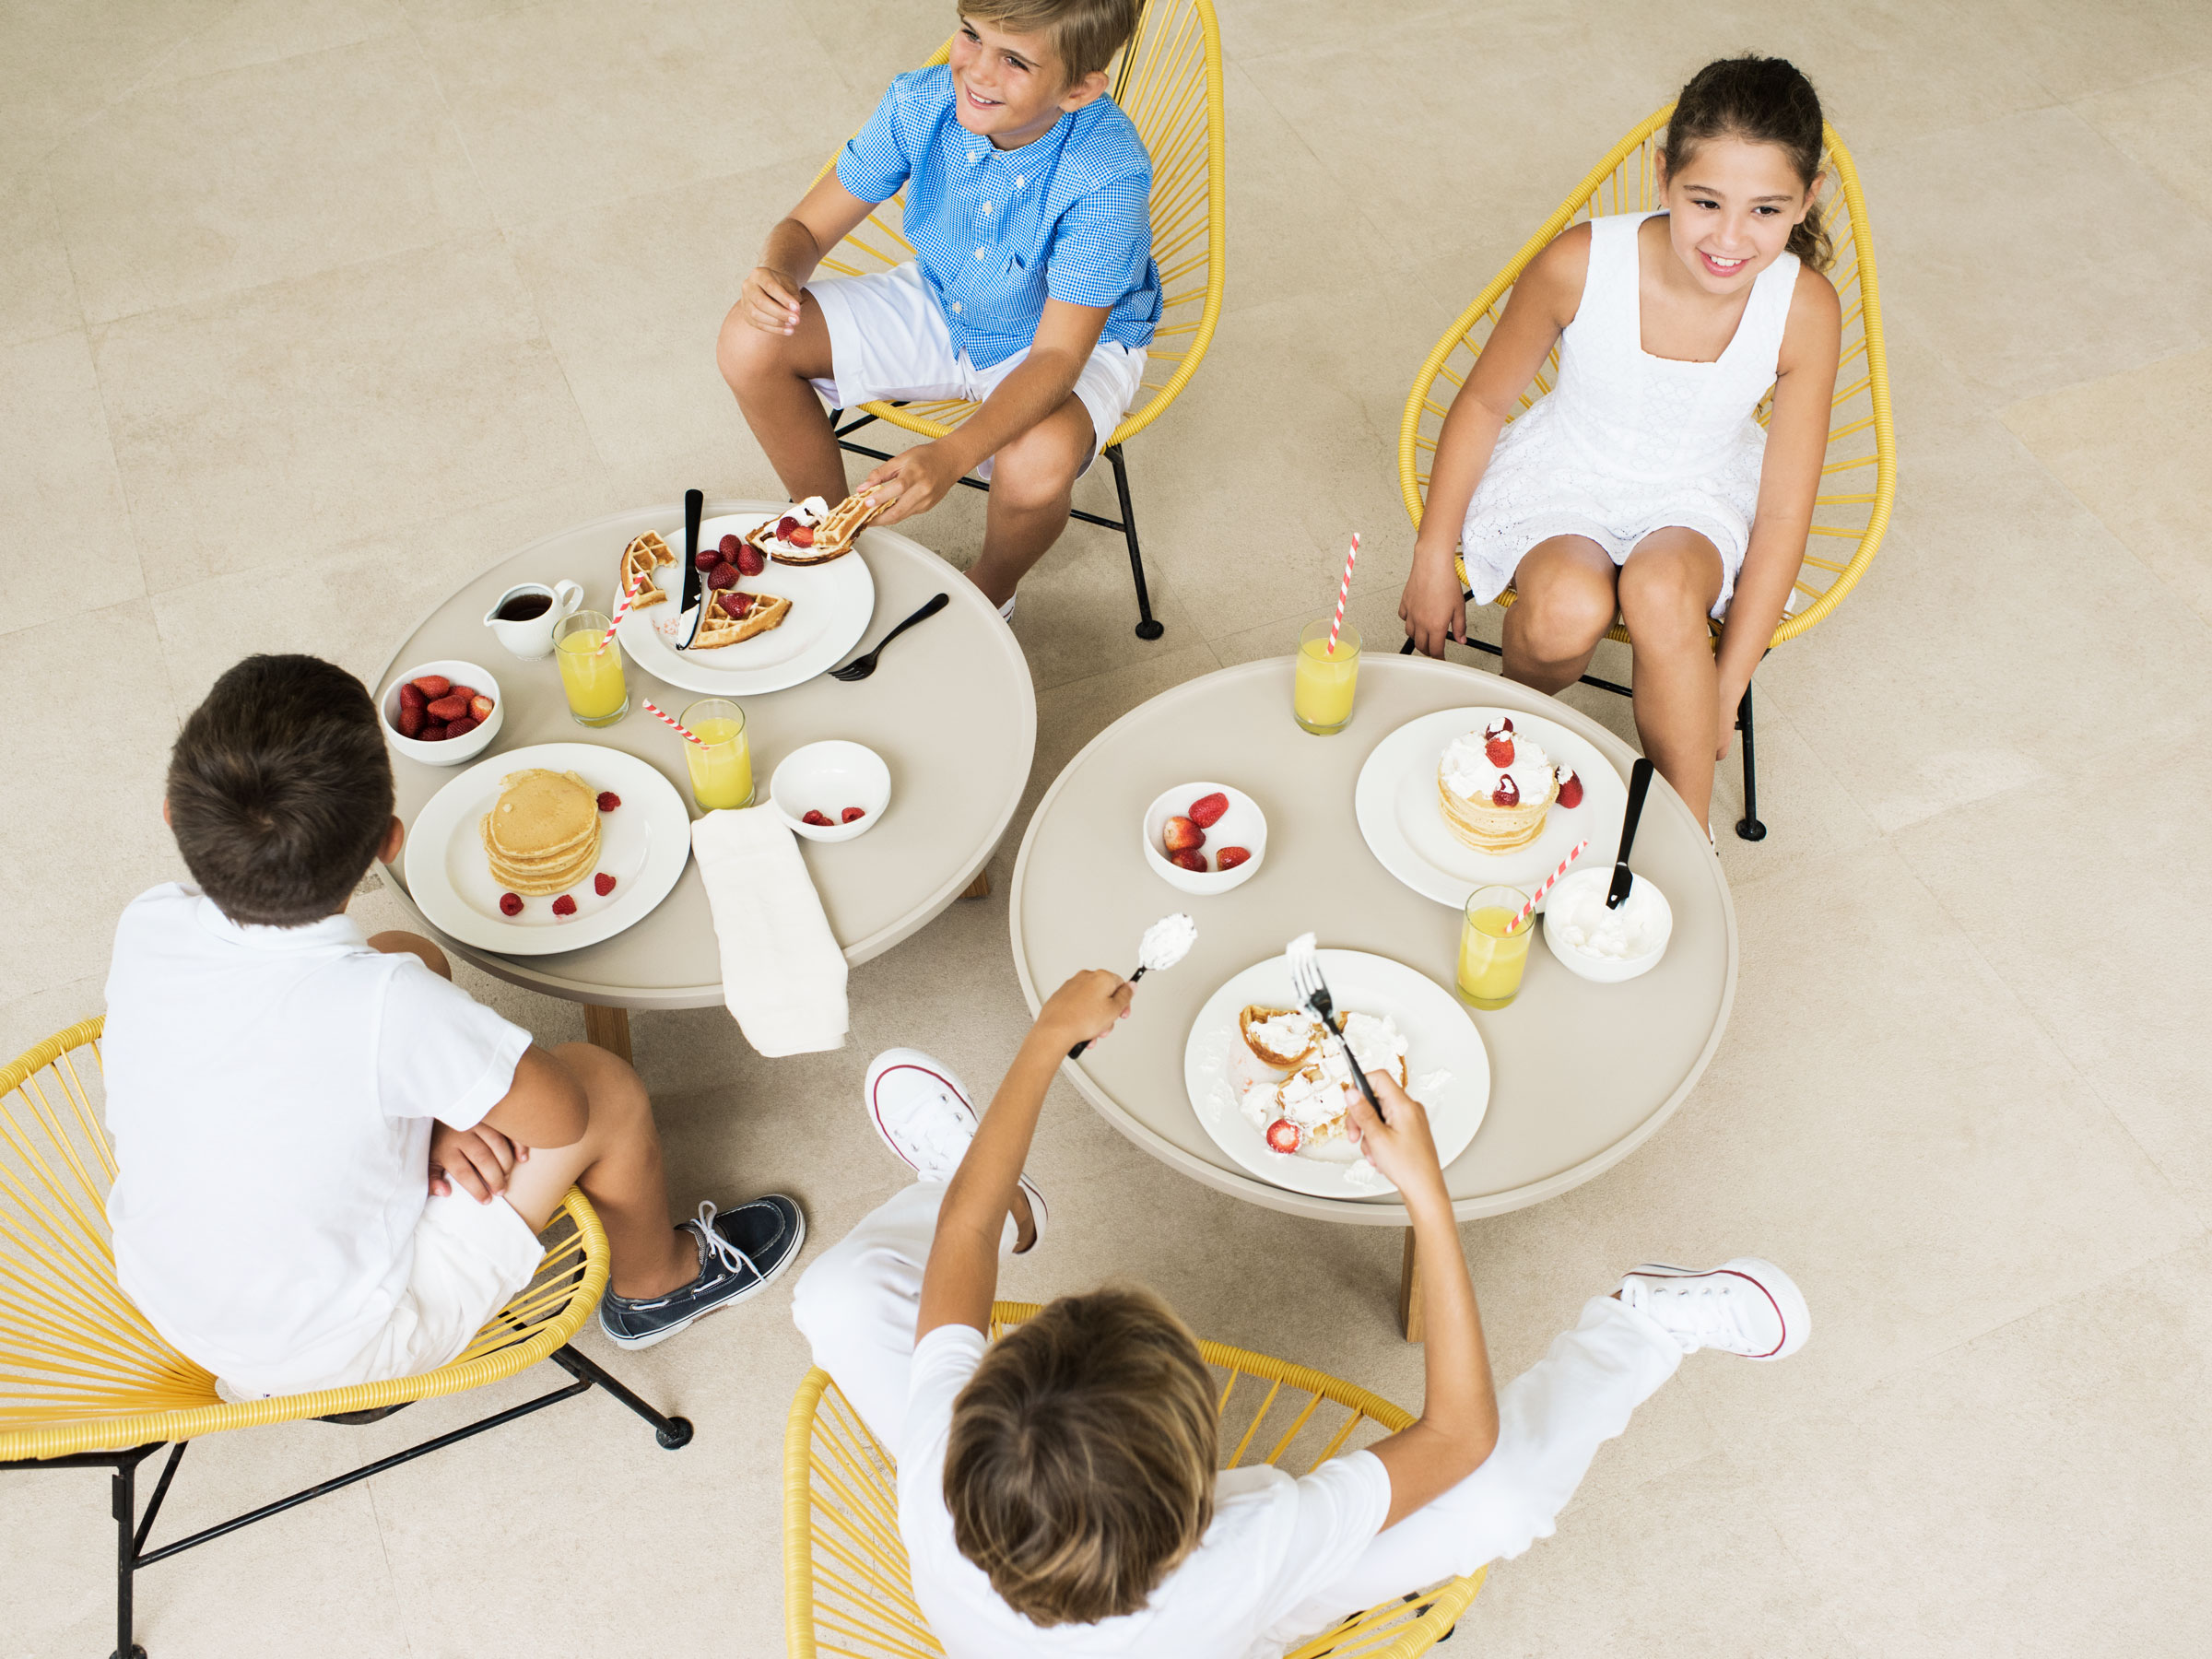 Cuisine for Kids at Our Family-Friendly All Inclusive Resort in Cancun